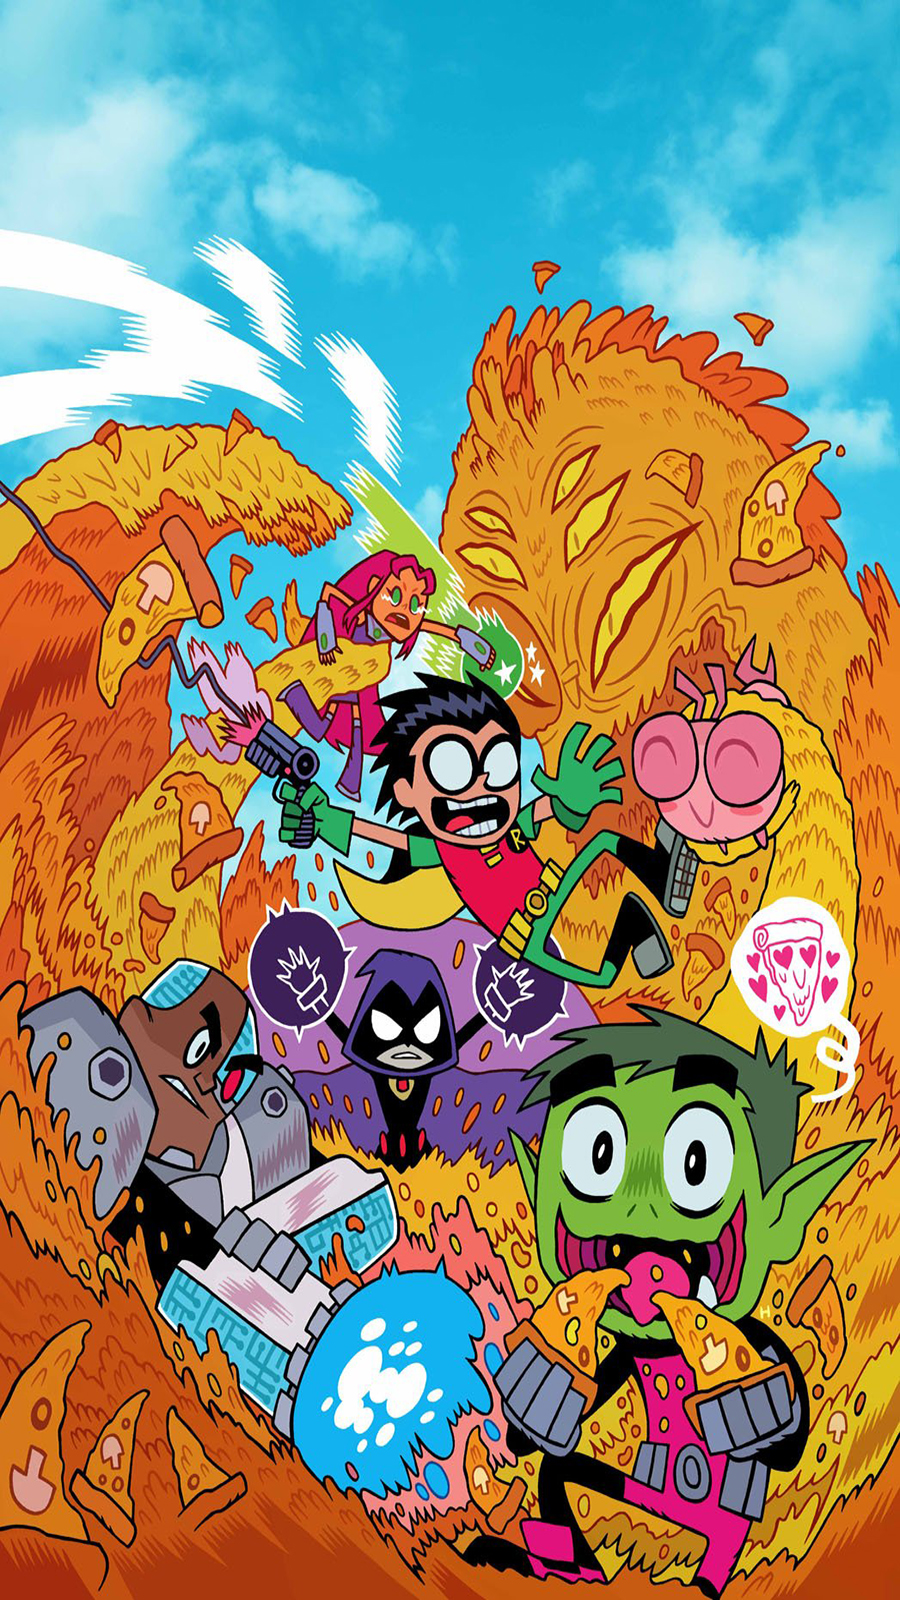 Teen Titans Go Wallpaper For Phone Free Download